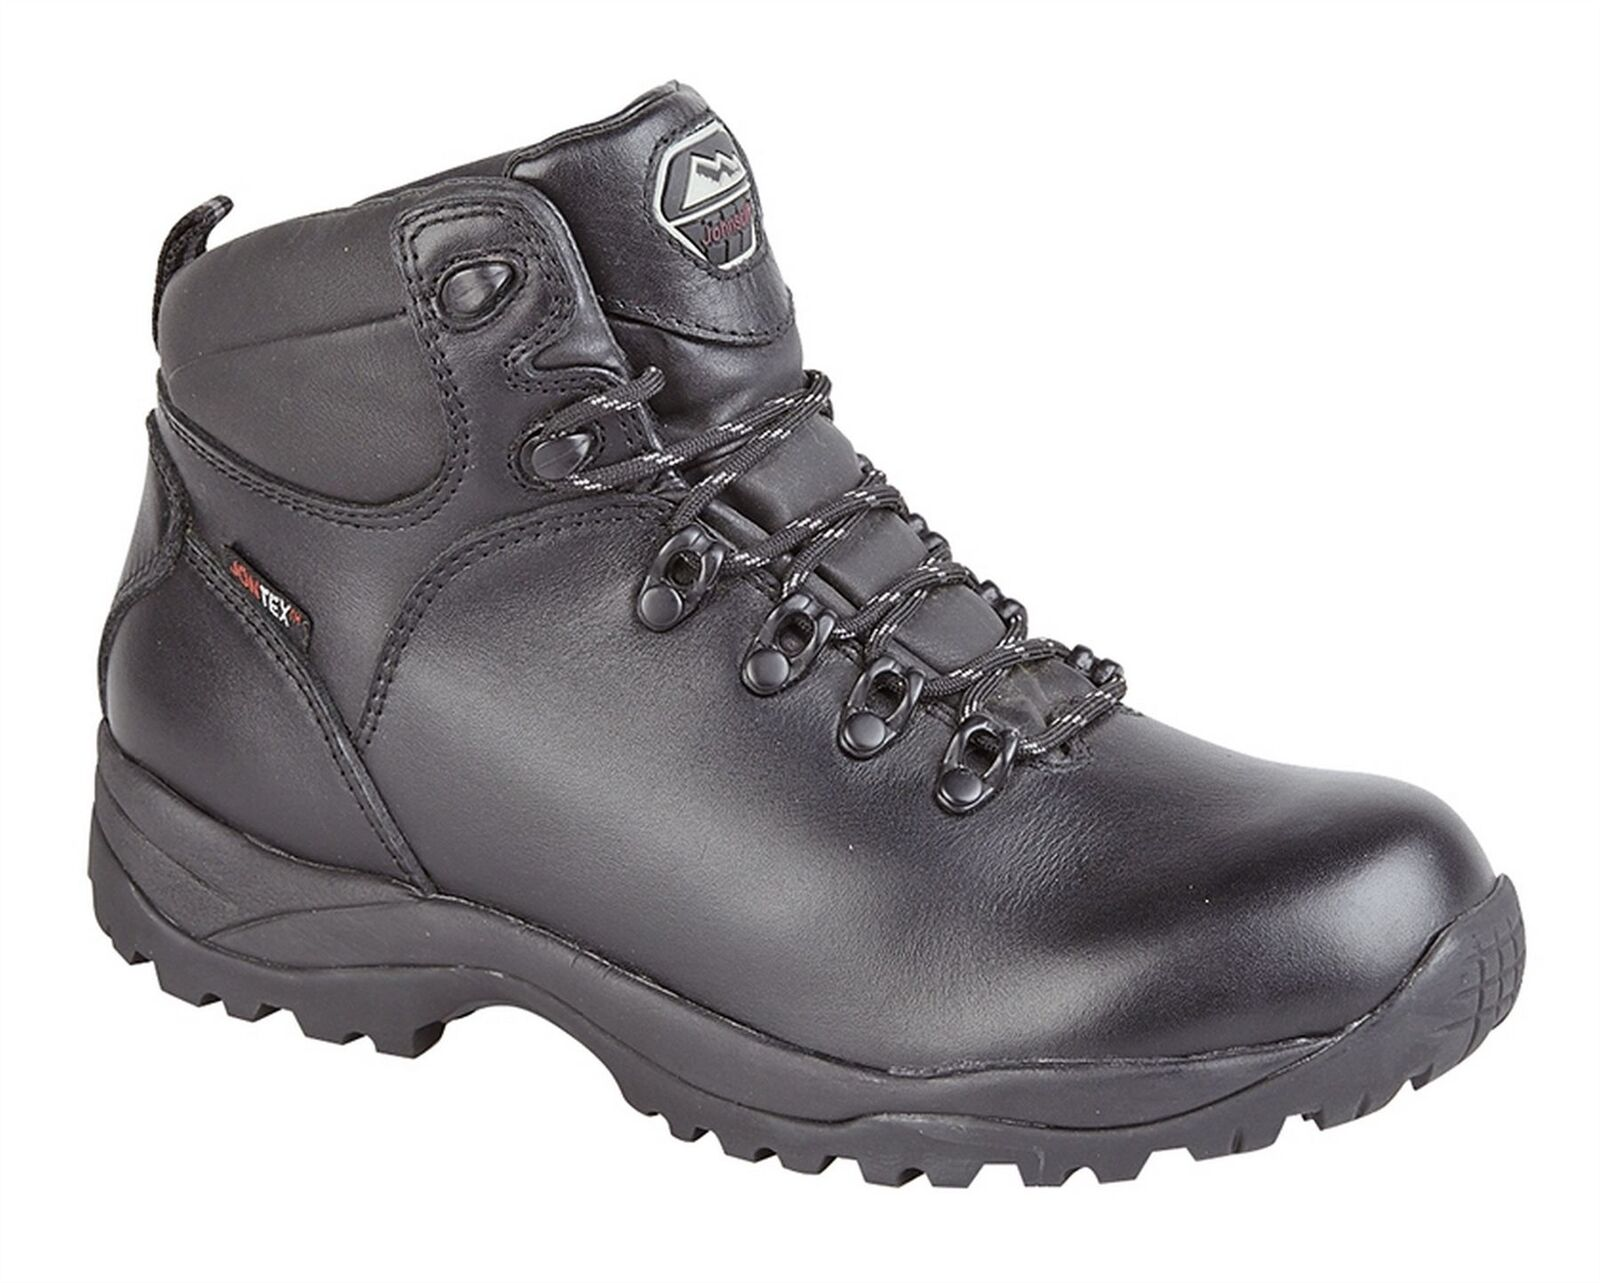 Mens Ankle Boots Leather Waterproof Superlight Hiking Walking Trail shoes Size